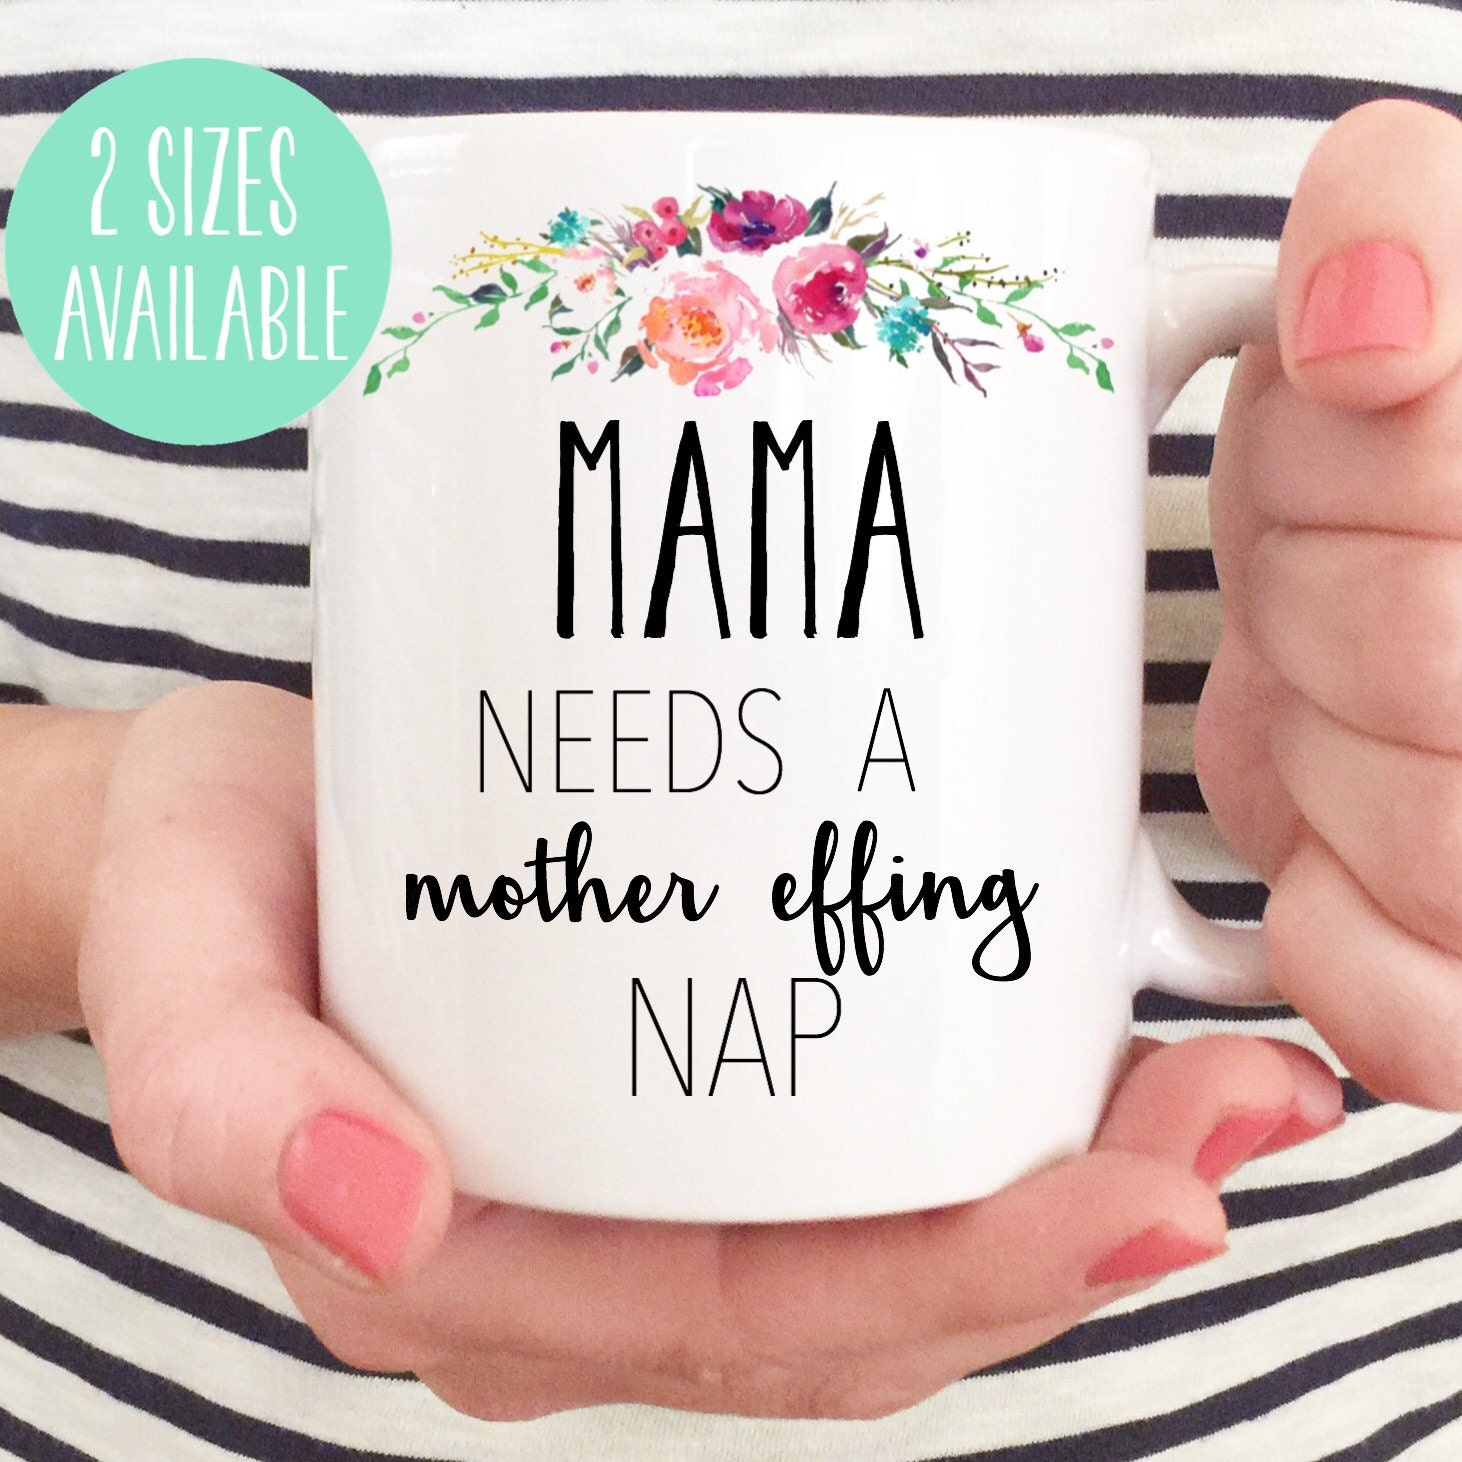 15oz New Mom Baby Shower Gift New Mom Gift Mama Needs A